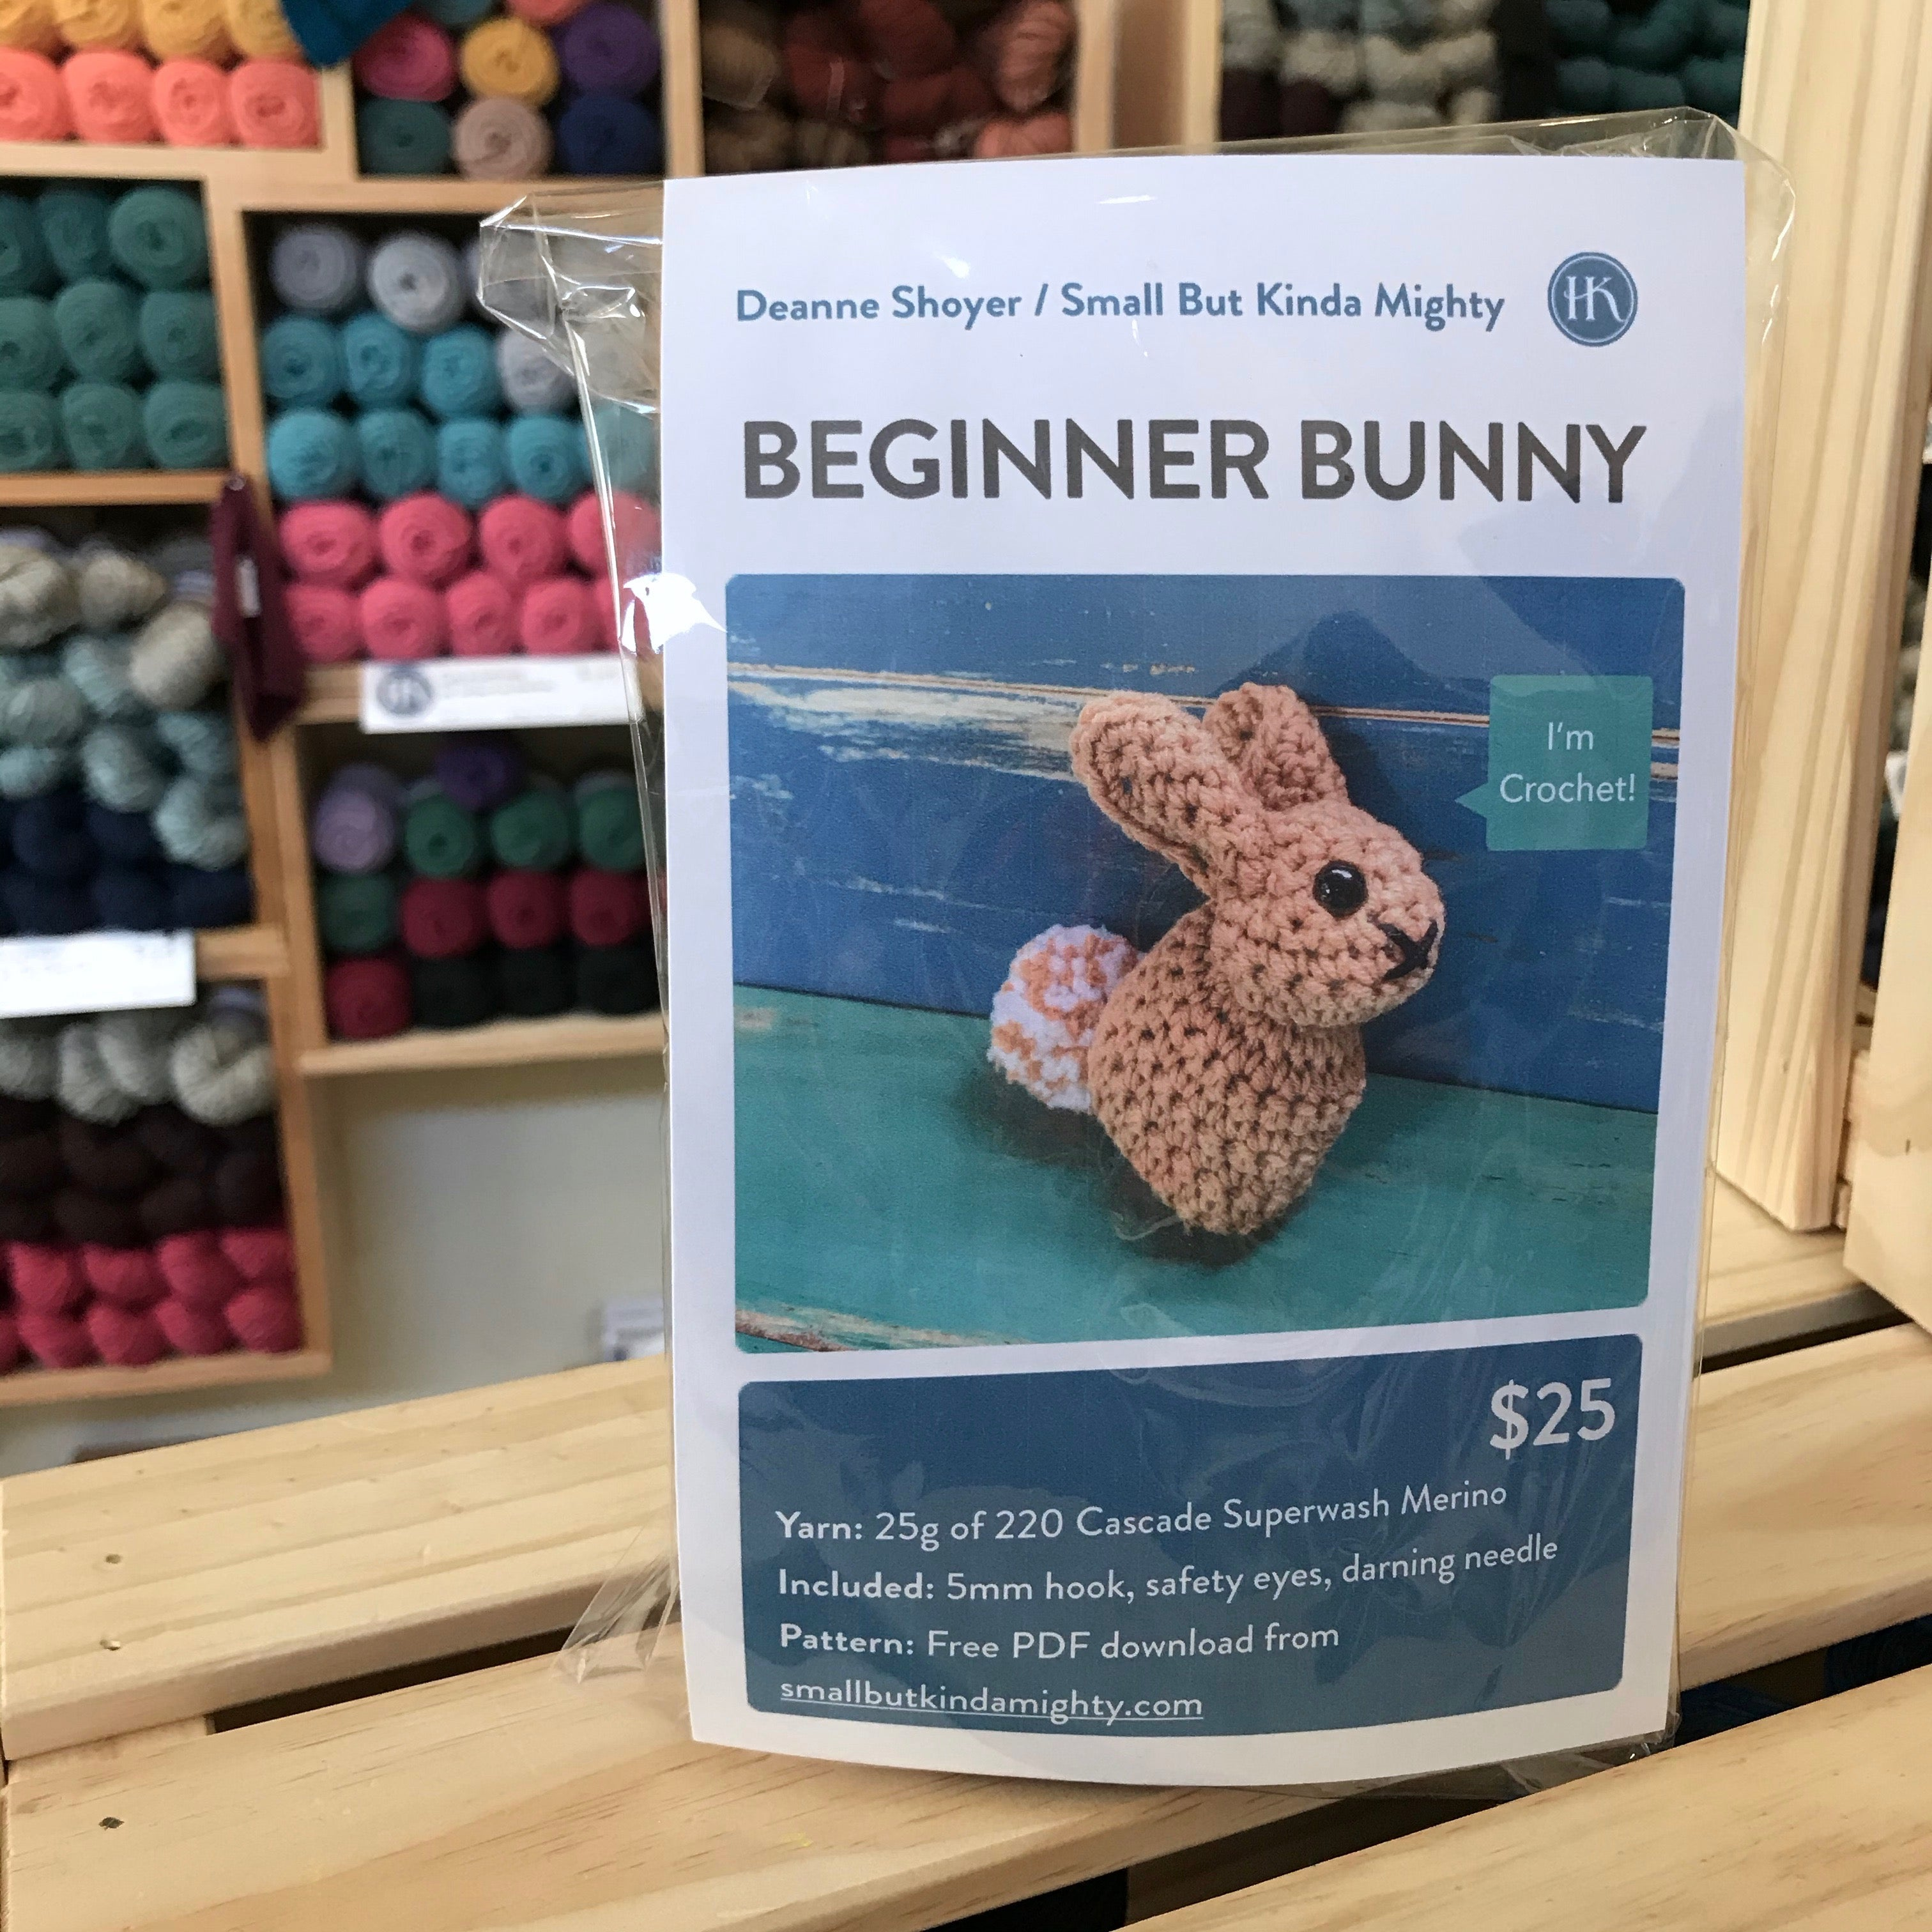 Beginner Bunny Crochet Kit